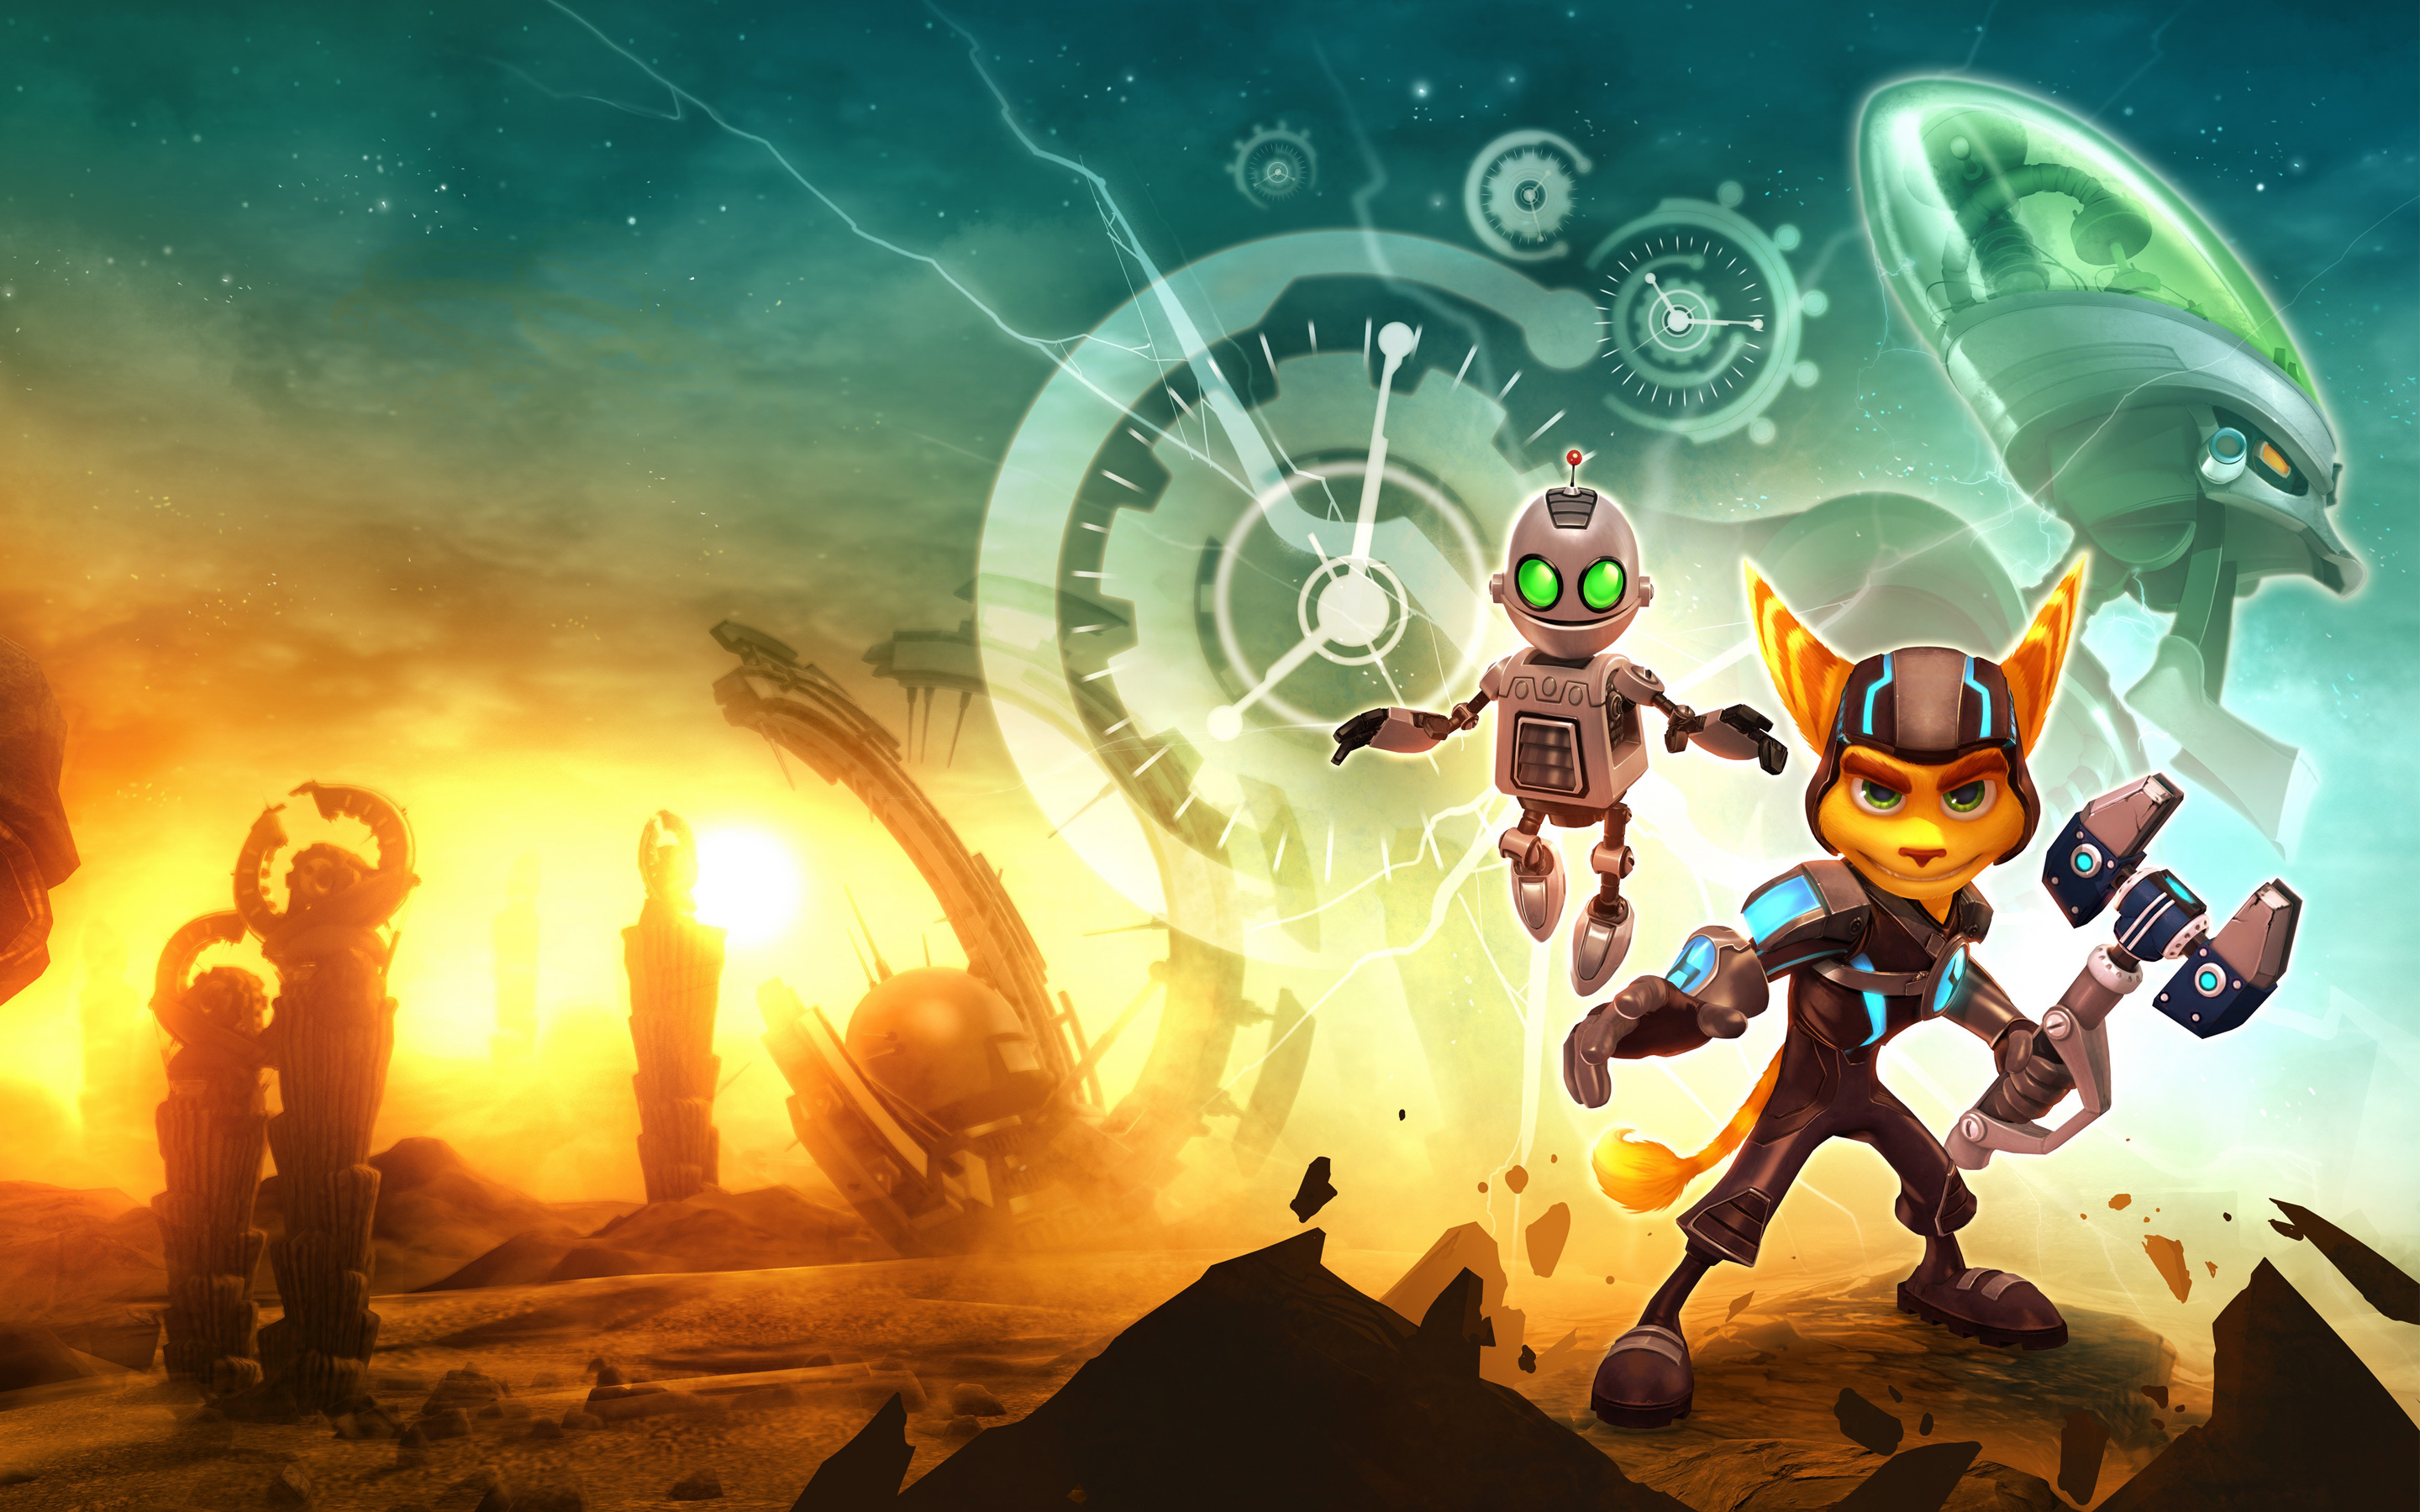 49 Ratchet And Clank Wallpaper Hd On Wallpapersafari